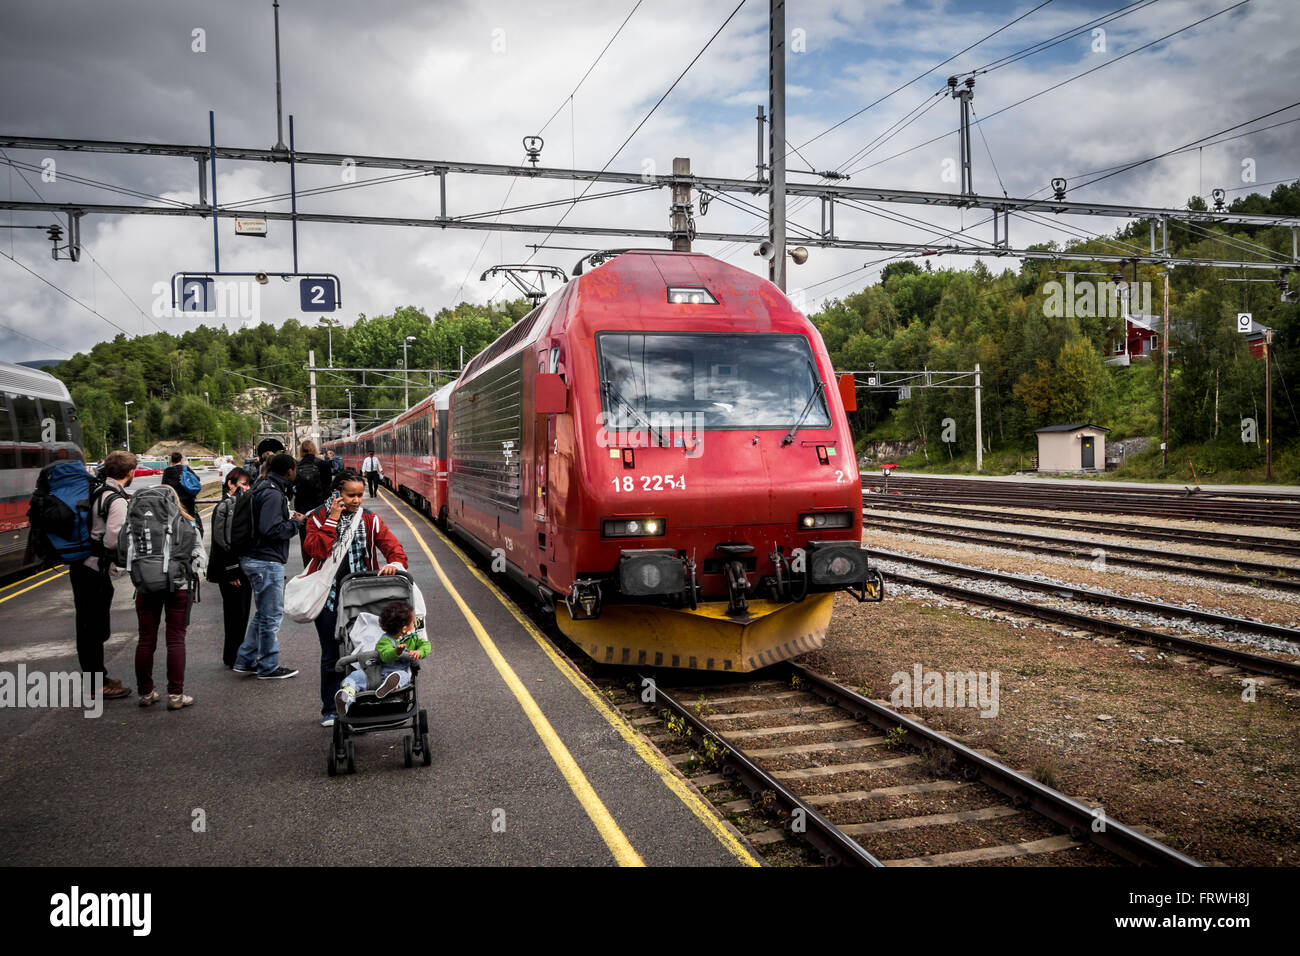 Modern train near the platform - Stock Image